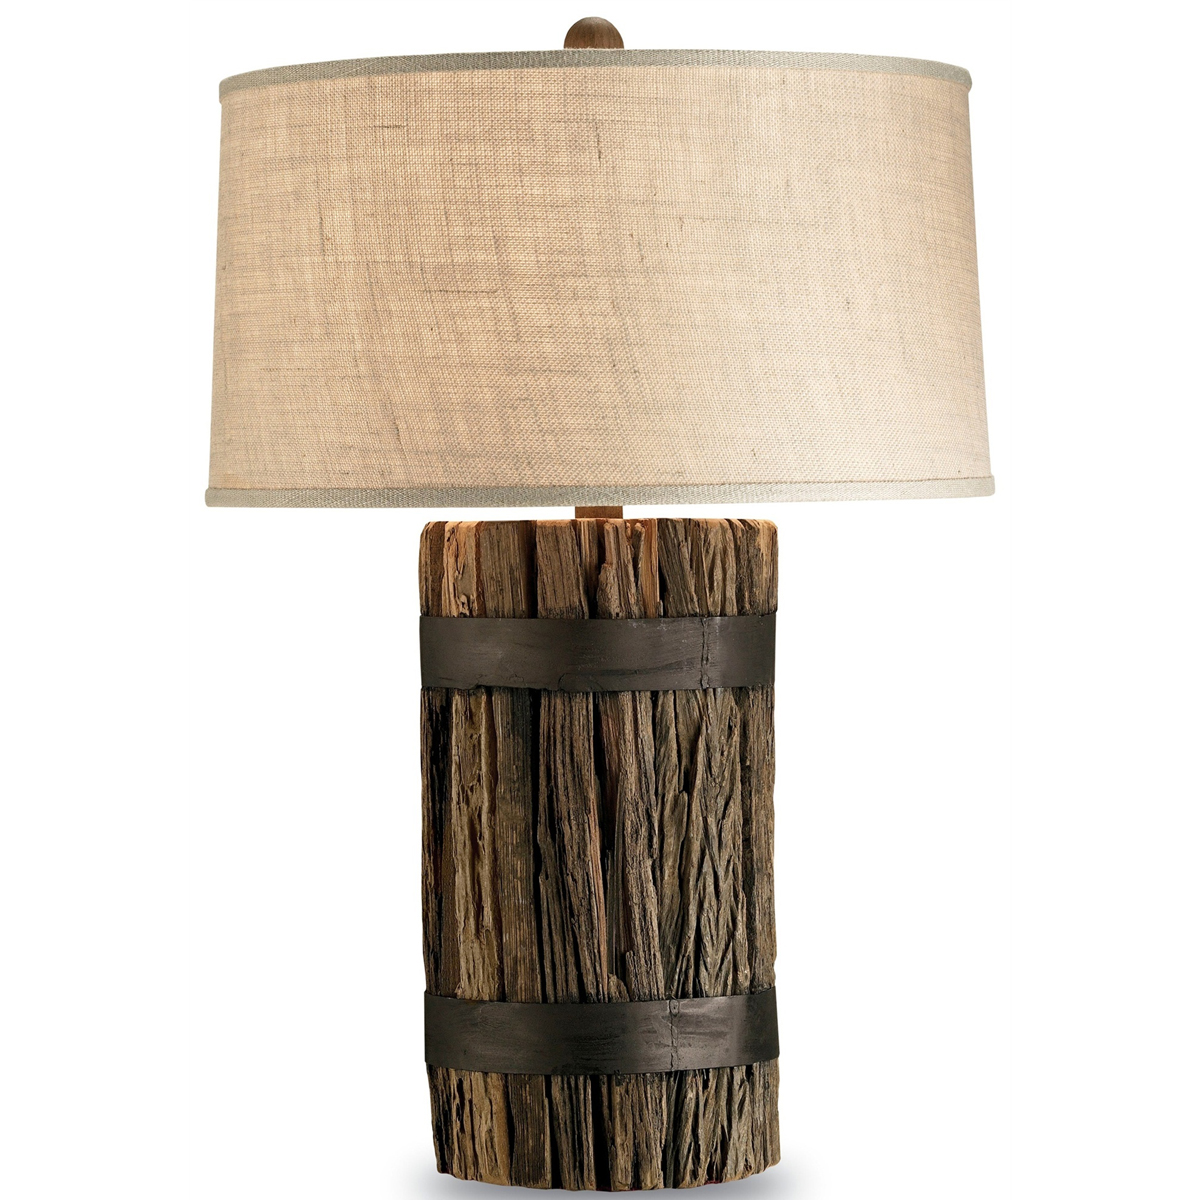 10 Facts About Rustic Wood Lamps